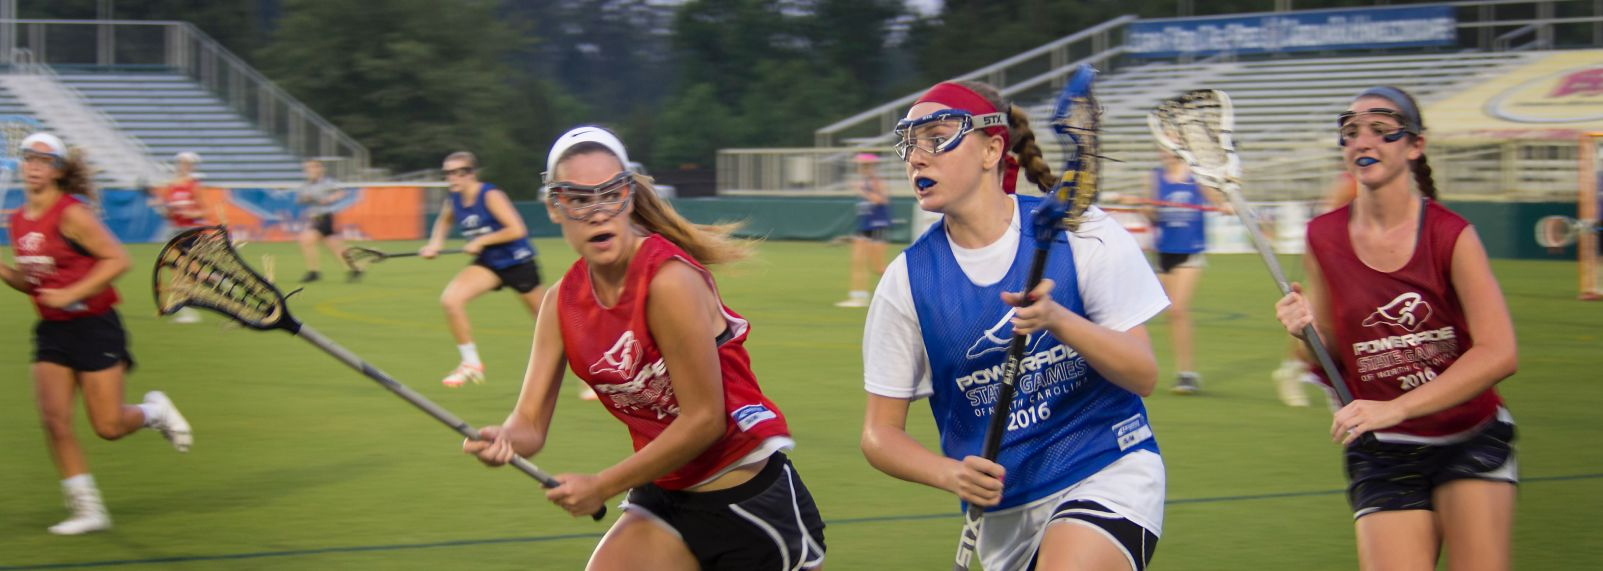 2016 Lacrosse - Credit Bill Russ Photography-215.jpeg